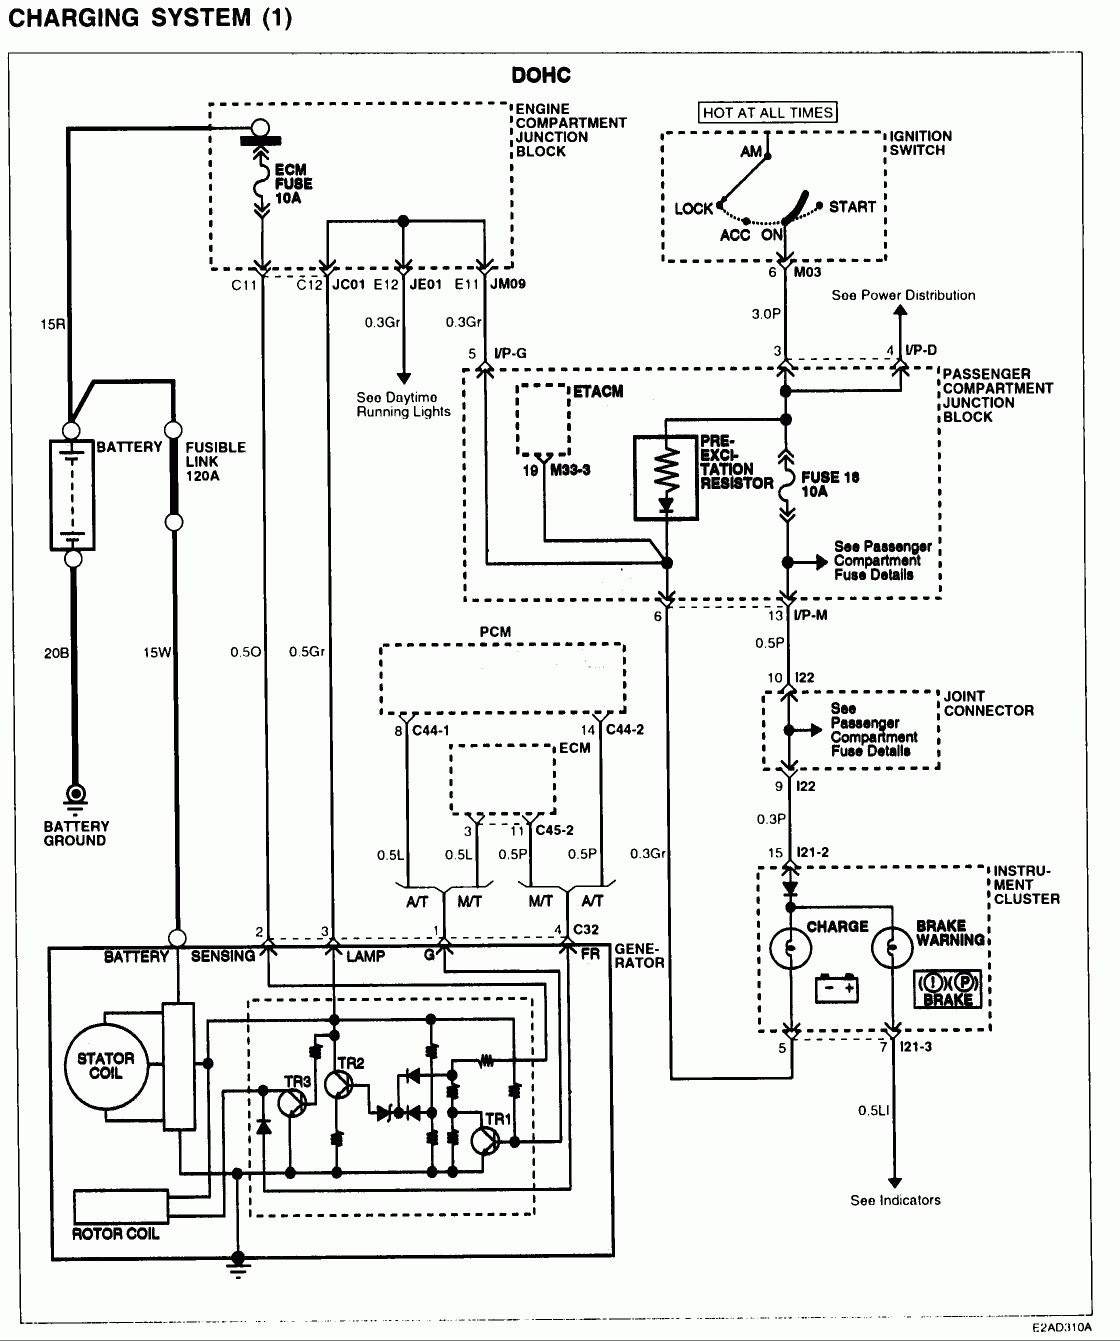 2002 Hyundai Santa Fe Wiring Diagram - Wiring Diagrams on